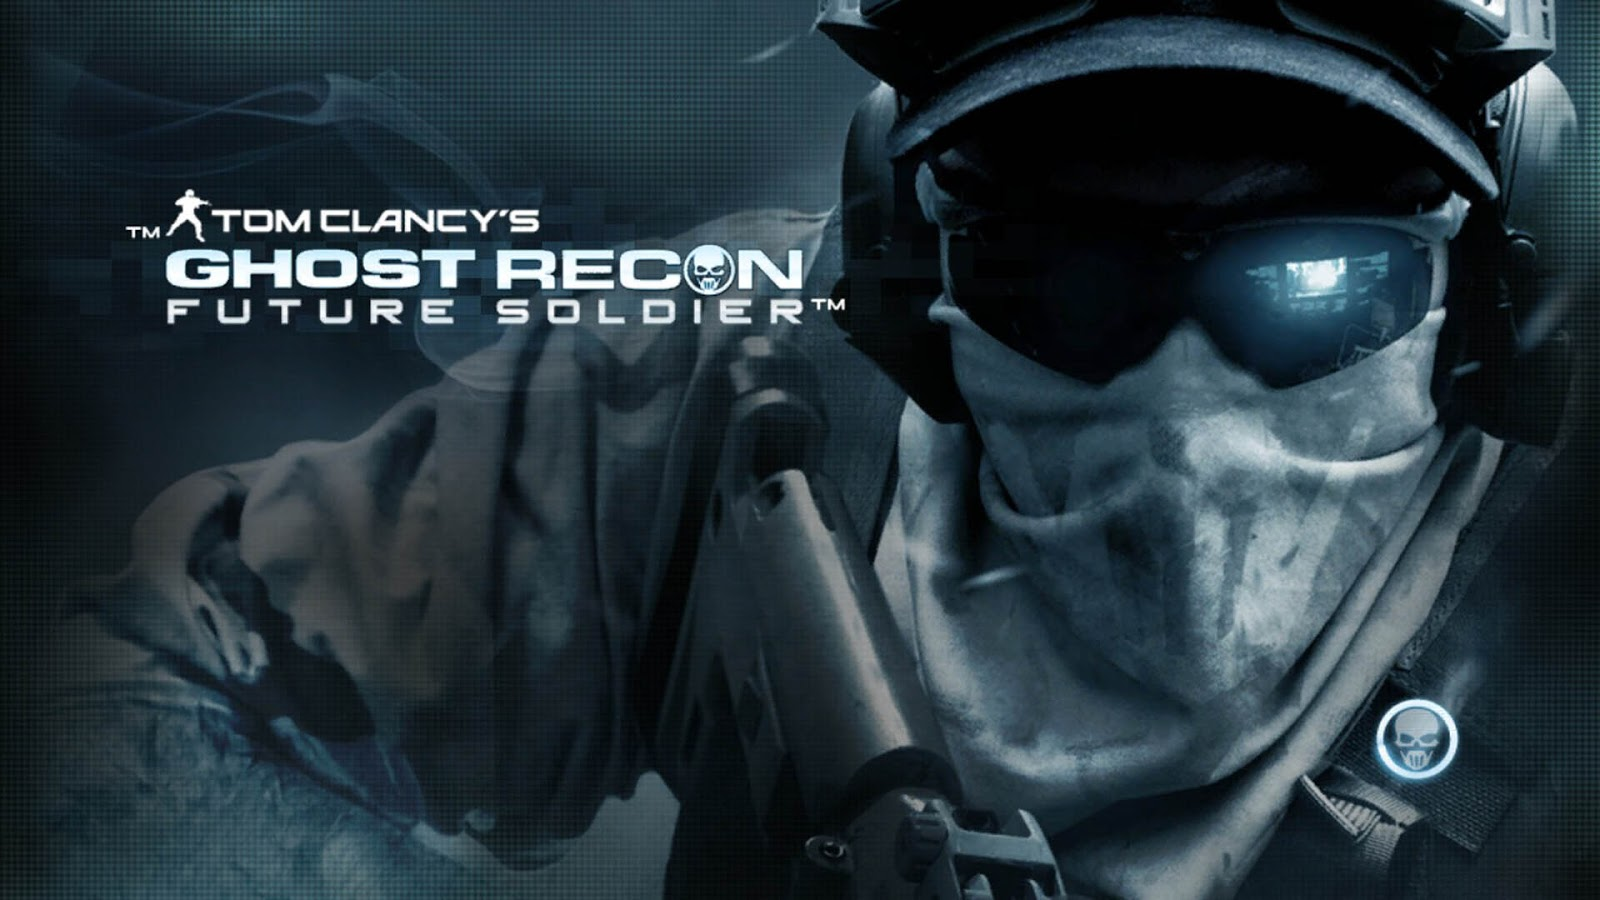 Ghost Recon Future Soldier HD & Widescreen Wallpaper 0.969541735533848